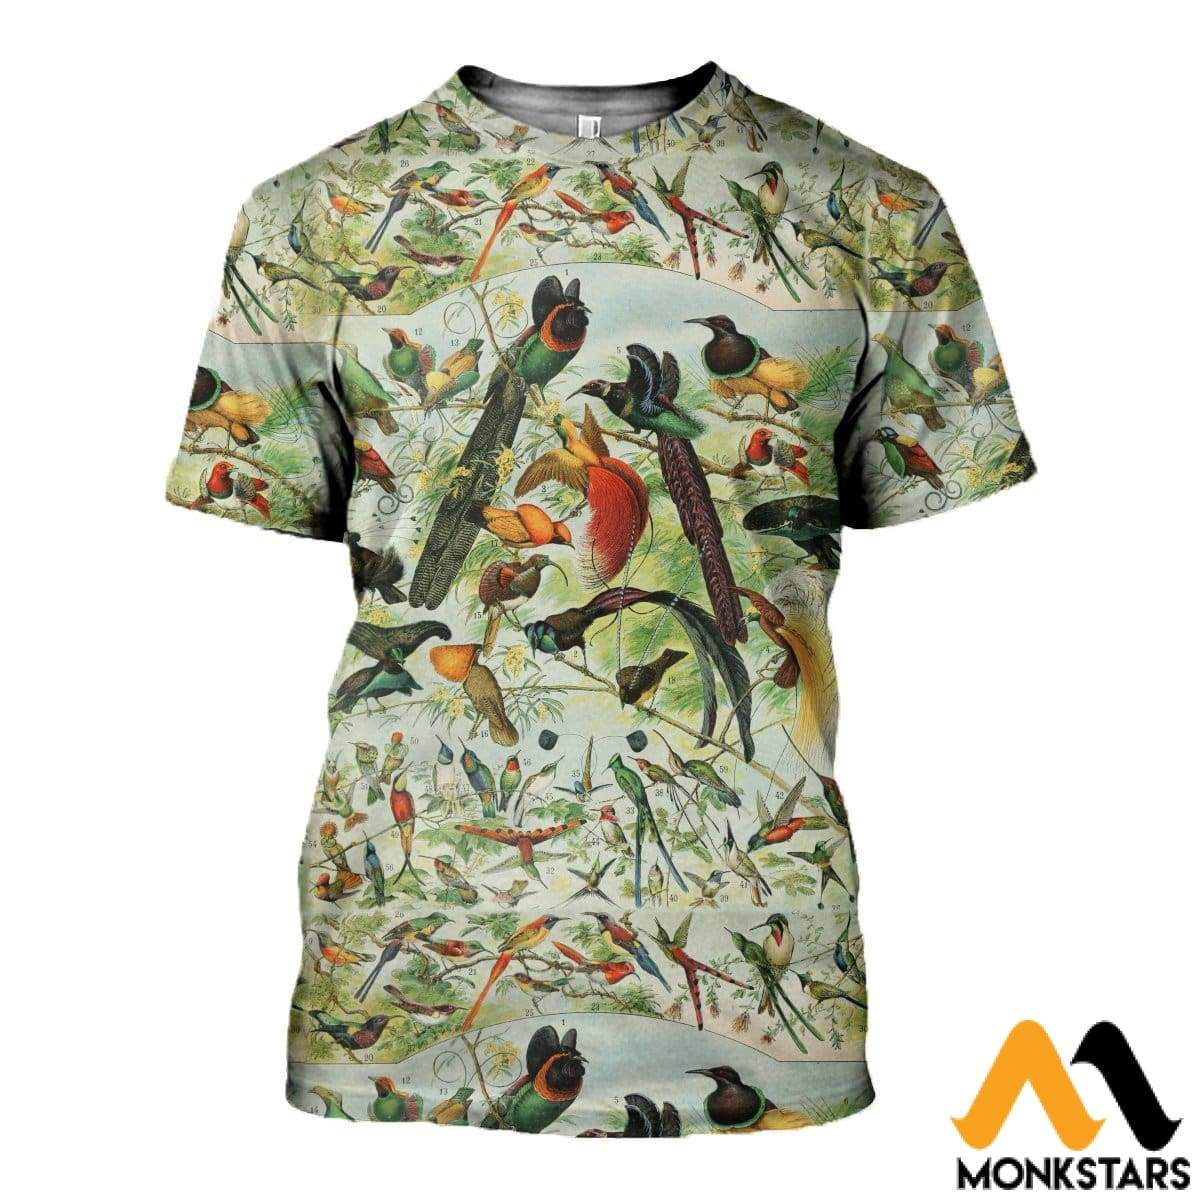 3D All Over Printed Beautiful Birds Shirts And Shorts T-Shirt / Xs Clothes